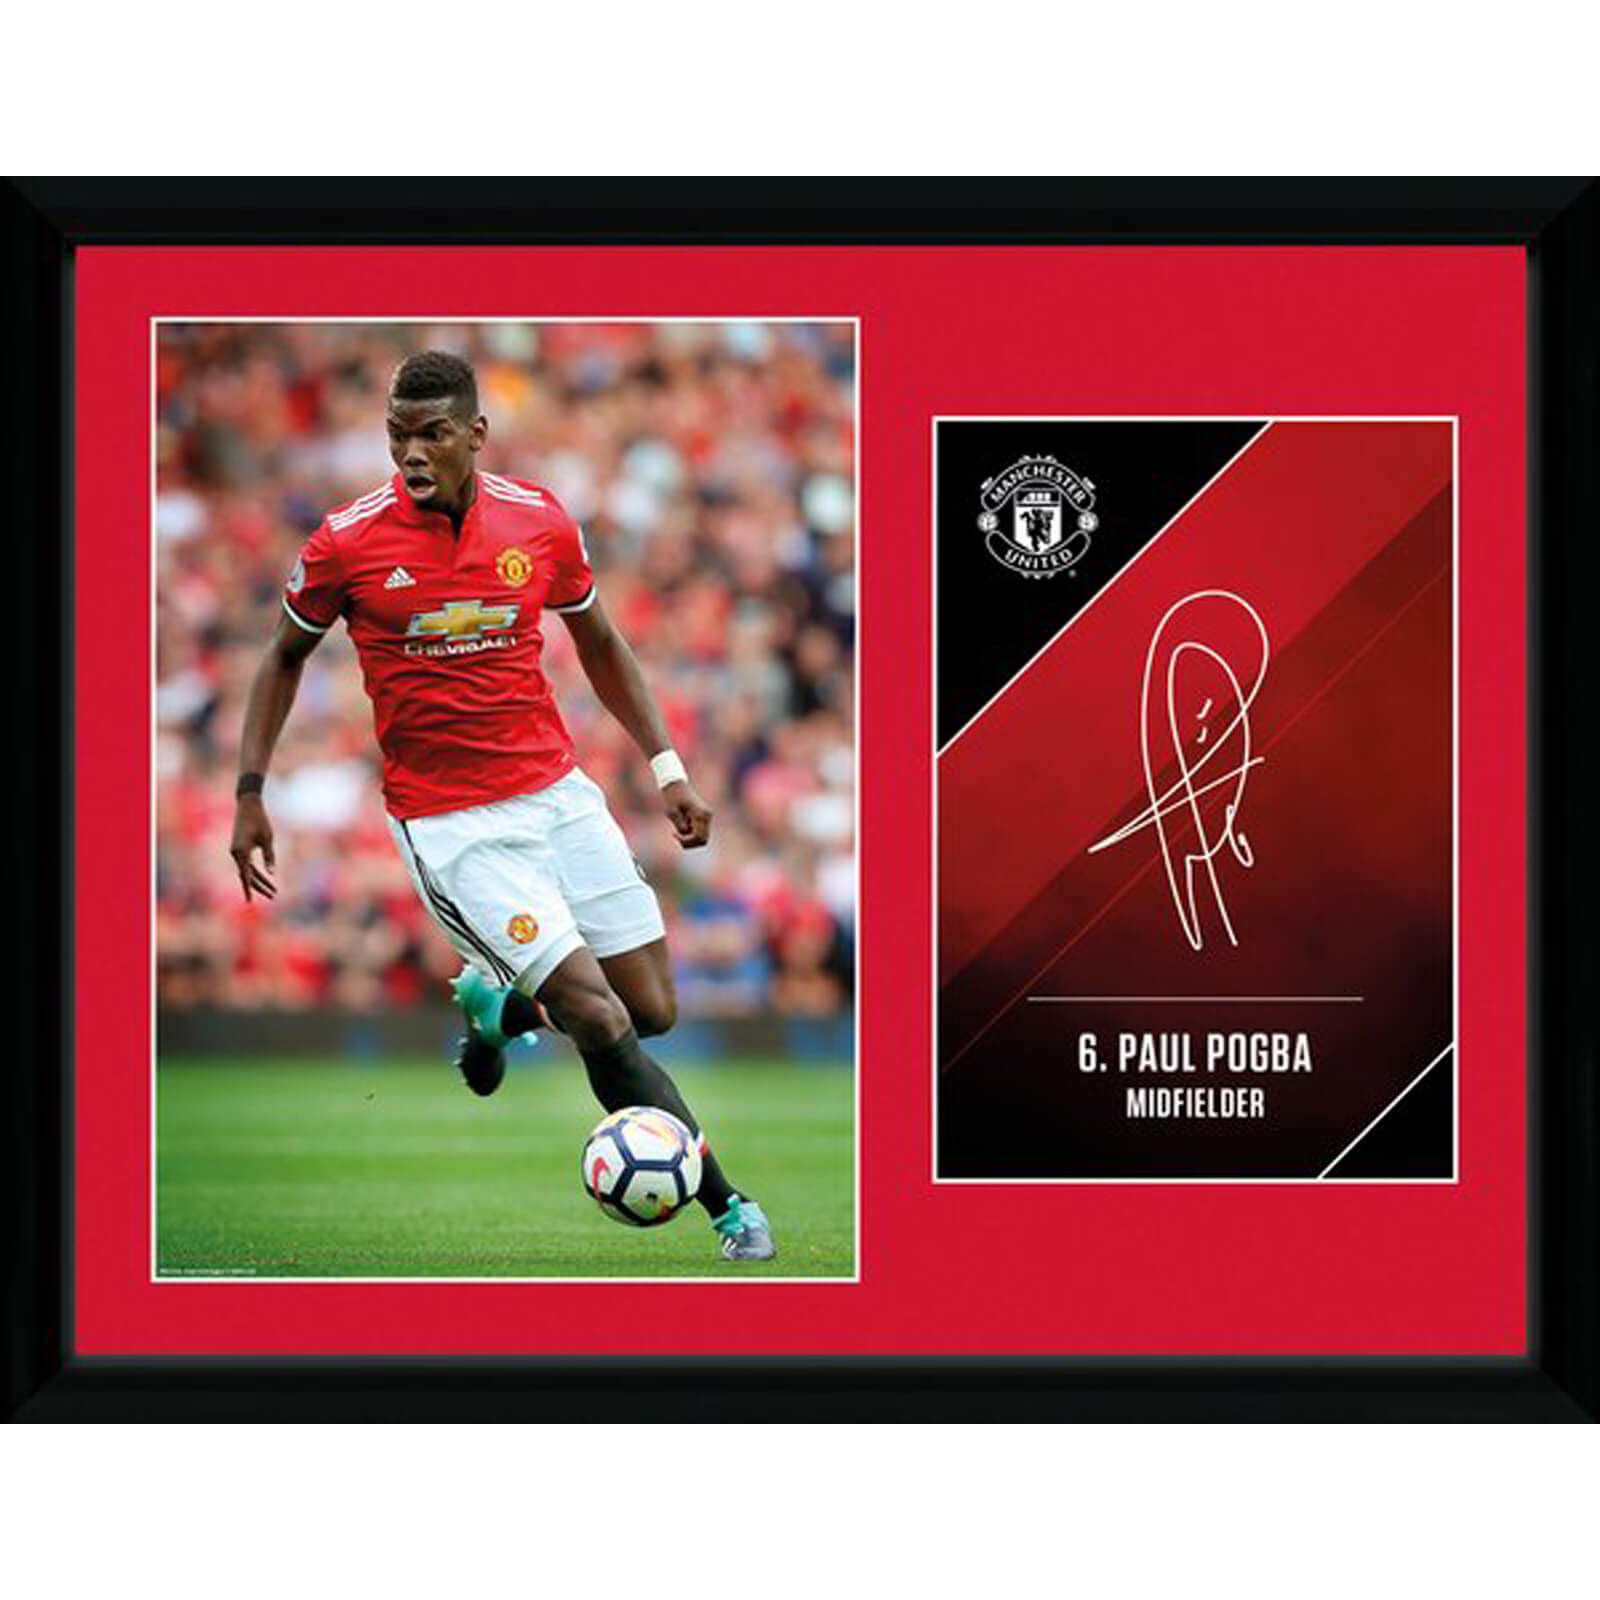 Manchester United Pogba 17/18 12 x 16 Inches Framed Photograph